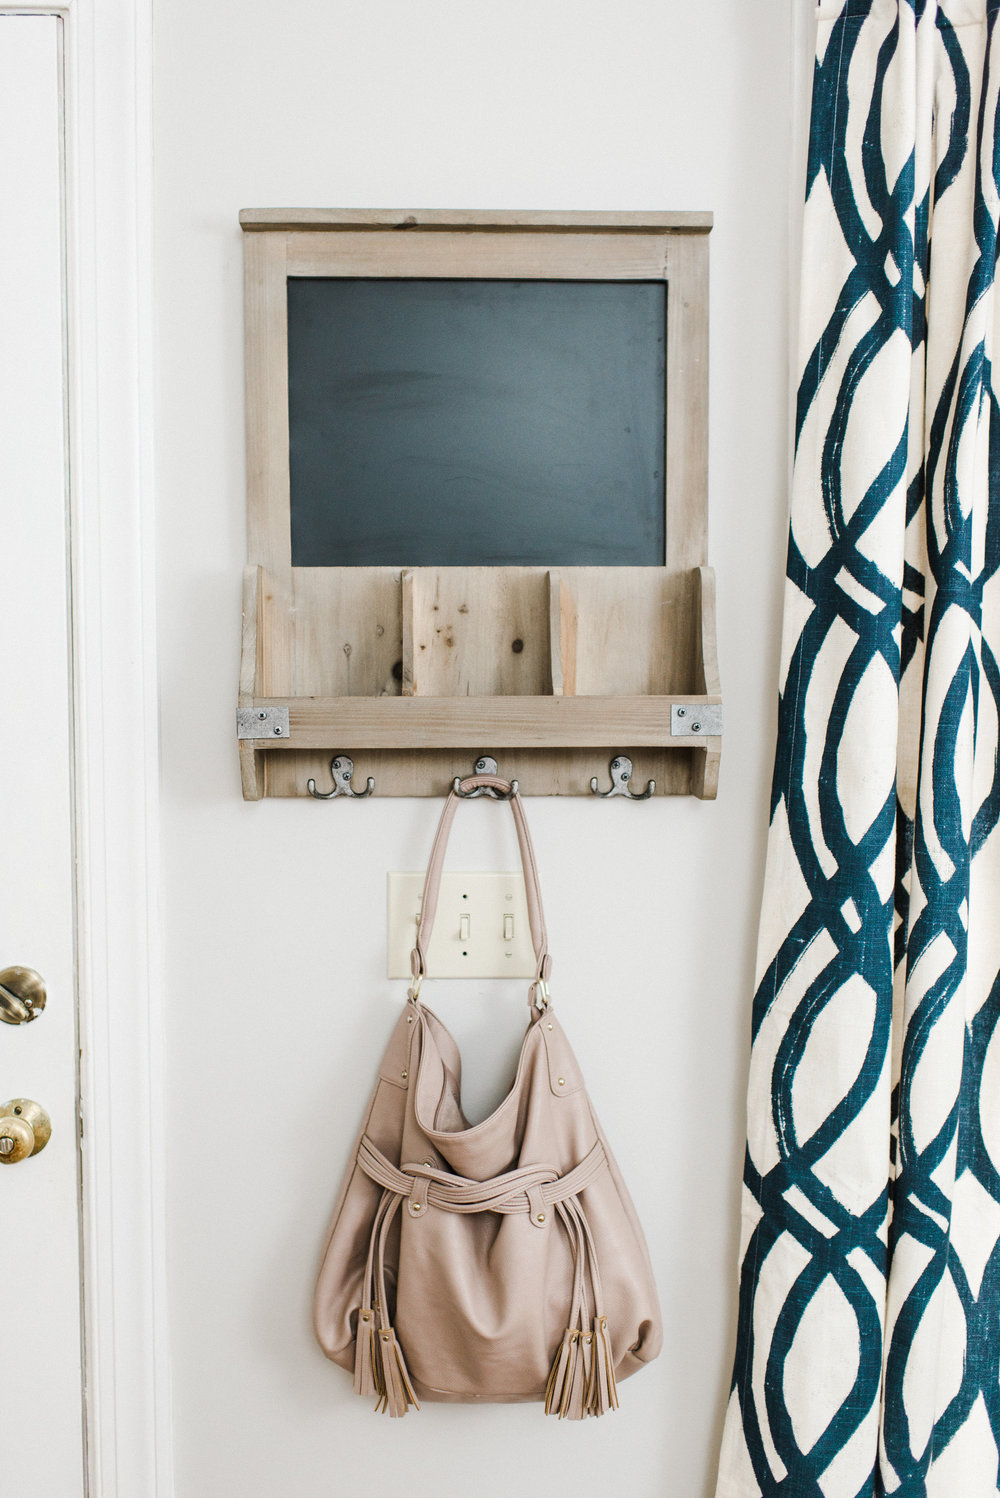 Elle & Company home tour with Michaela Noelle Designs and Andrea Pesce Photography